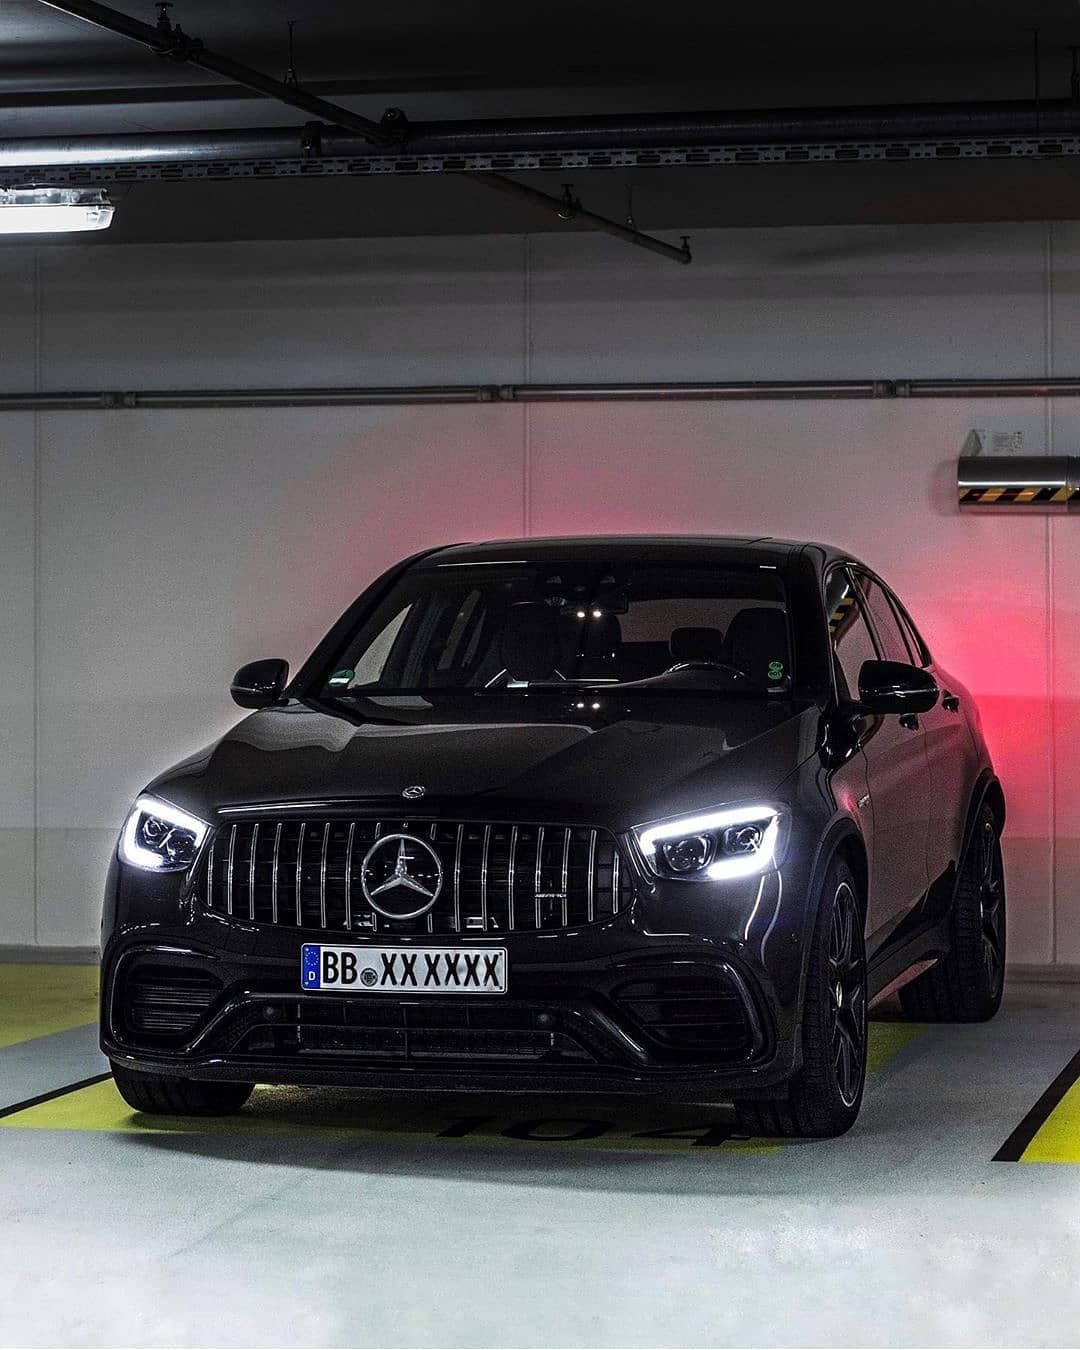 Mercedes Amg C253 Glc 63 S Coupe Facelift Mercedes Mercedesamg